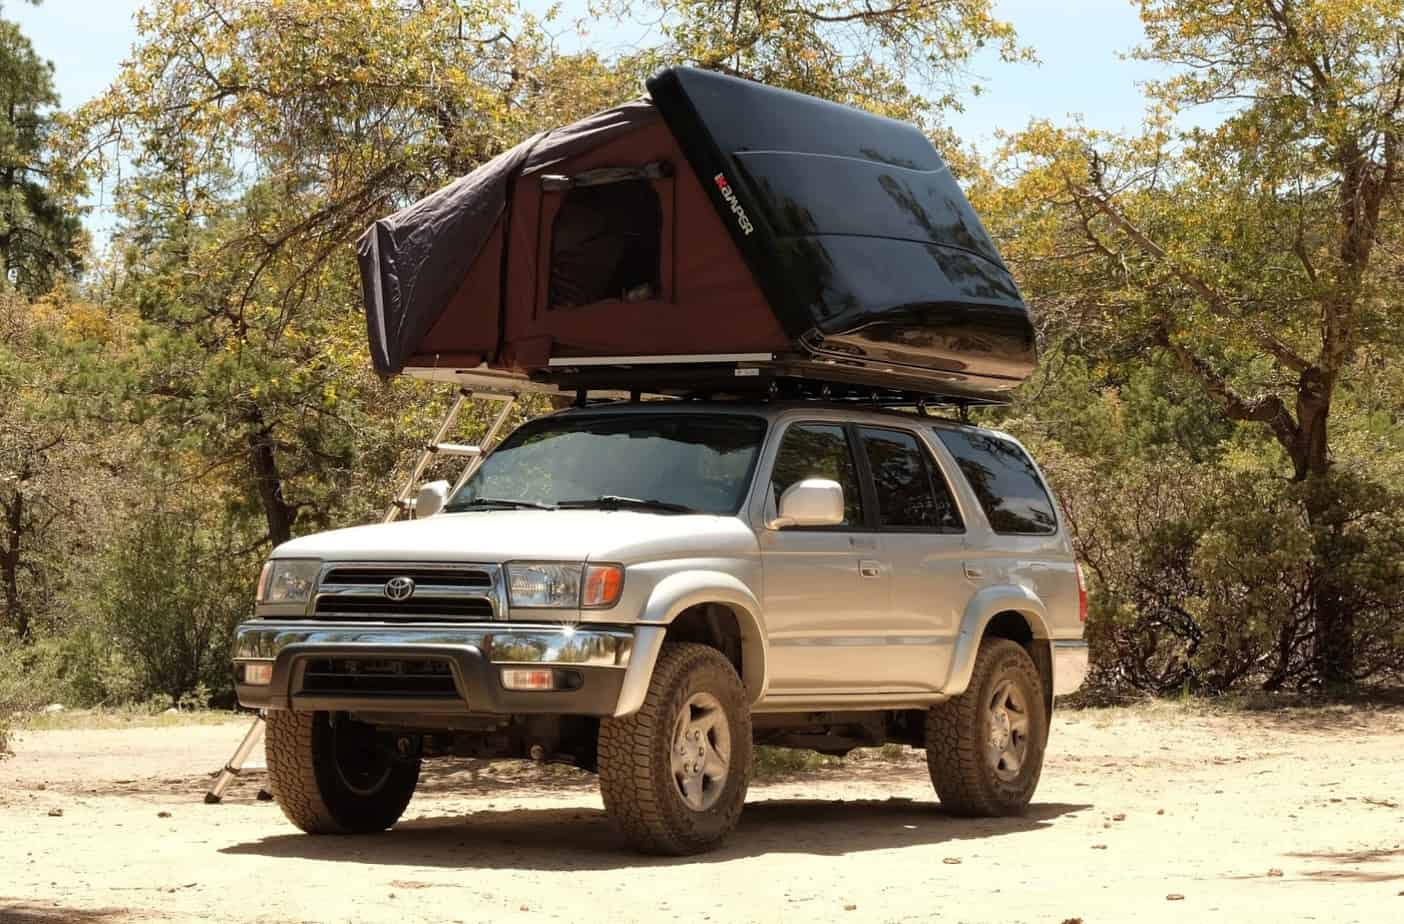 Overall I think the iK&er Skyc& is an excellent evolution of roof top tents. It is aerodynamic sleek and stylish easy to use and most importantly to ... & Field Tested: iKamper SkyCamp 4-Person Rooftop Tent u2013 Expedition ...